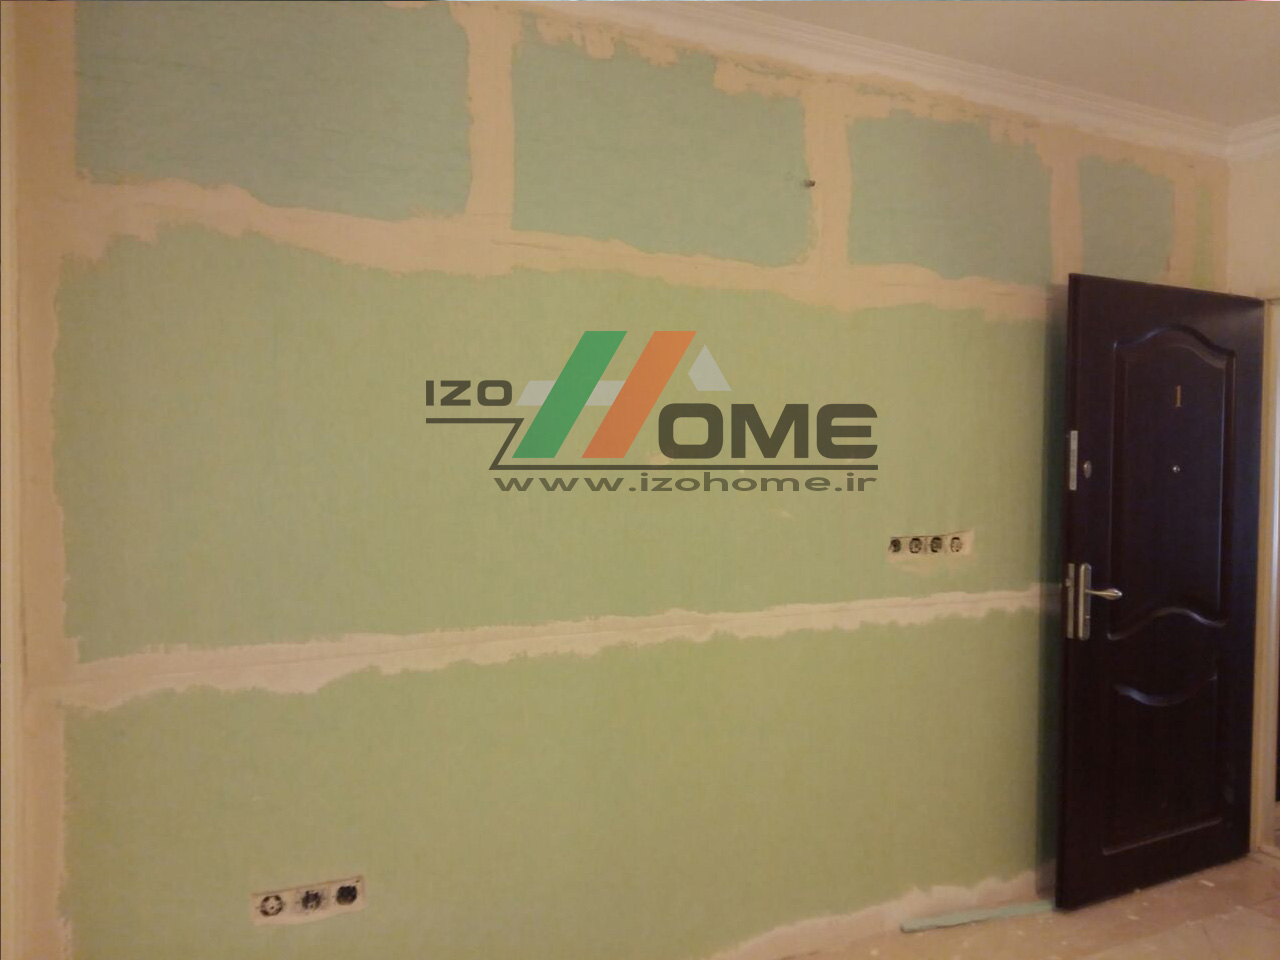 izohome30 - Sound insulation for the wall